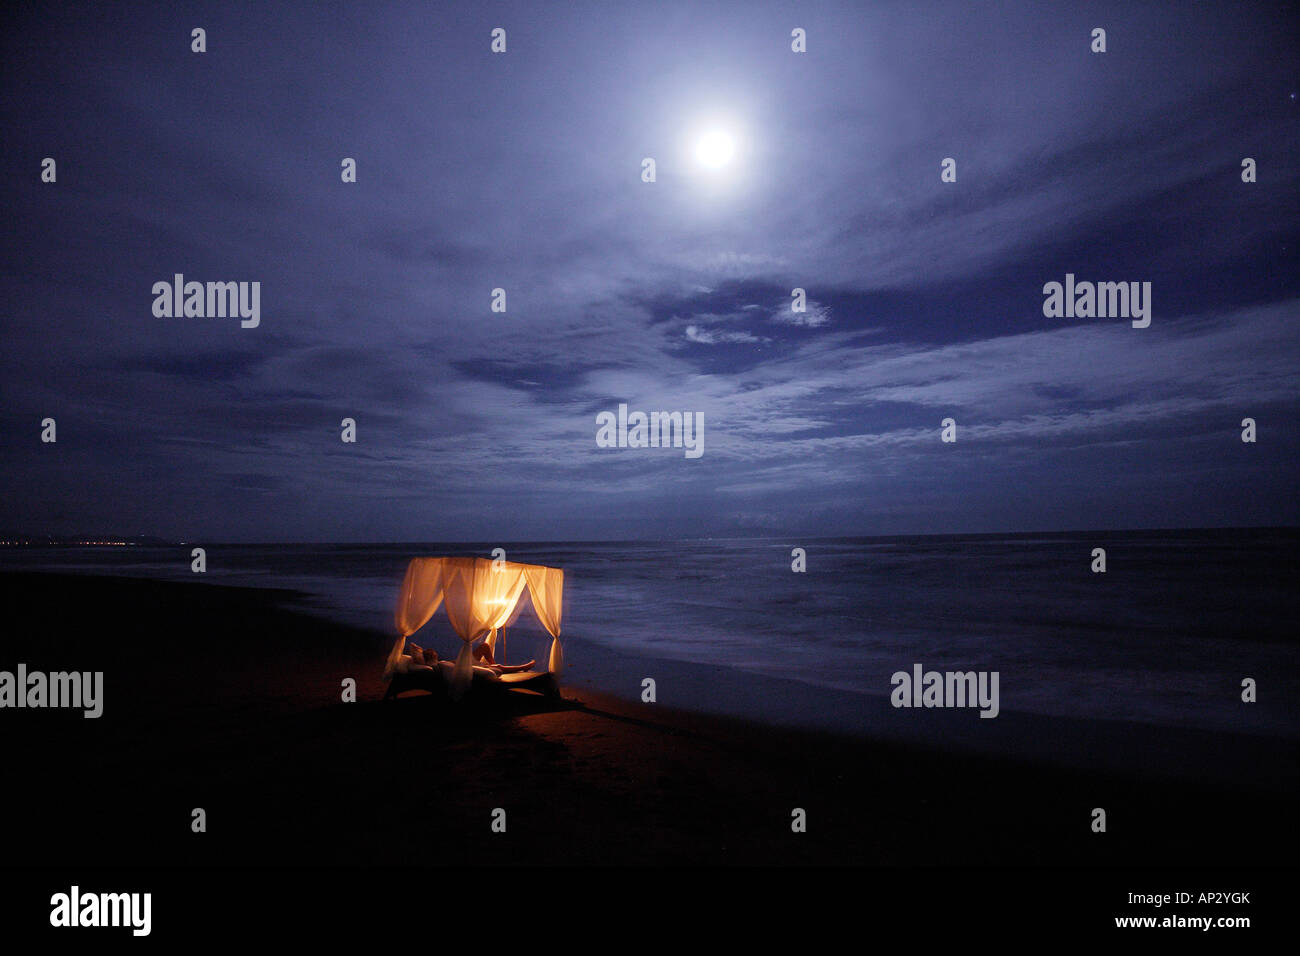 Illuminated four-poster bed standing on the beach at night, Bali, Indonesia - Stock Image